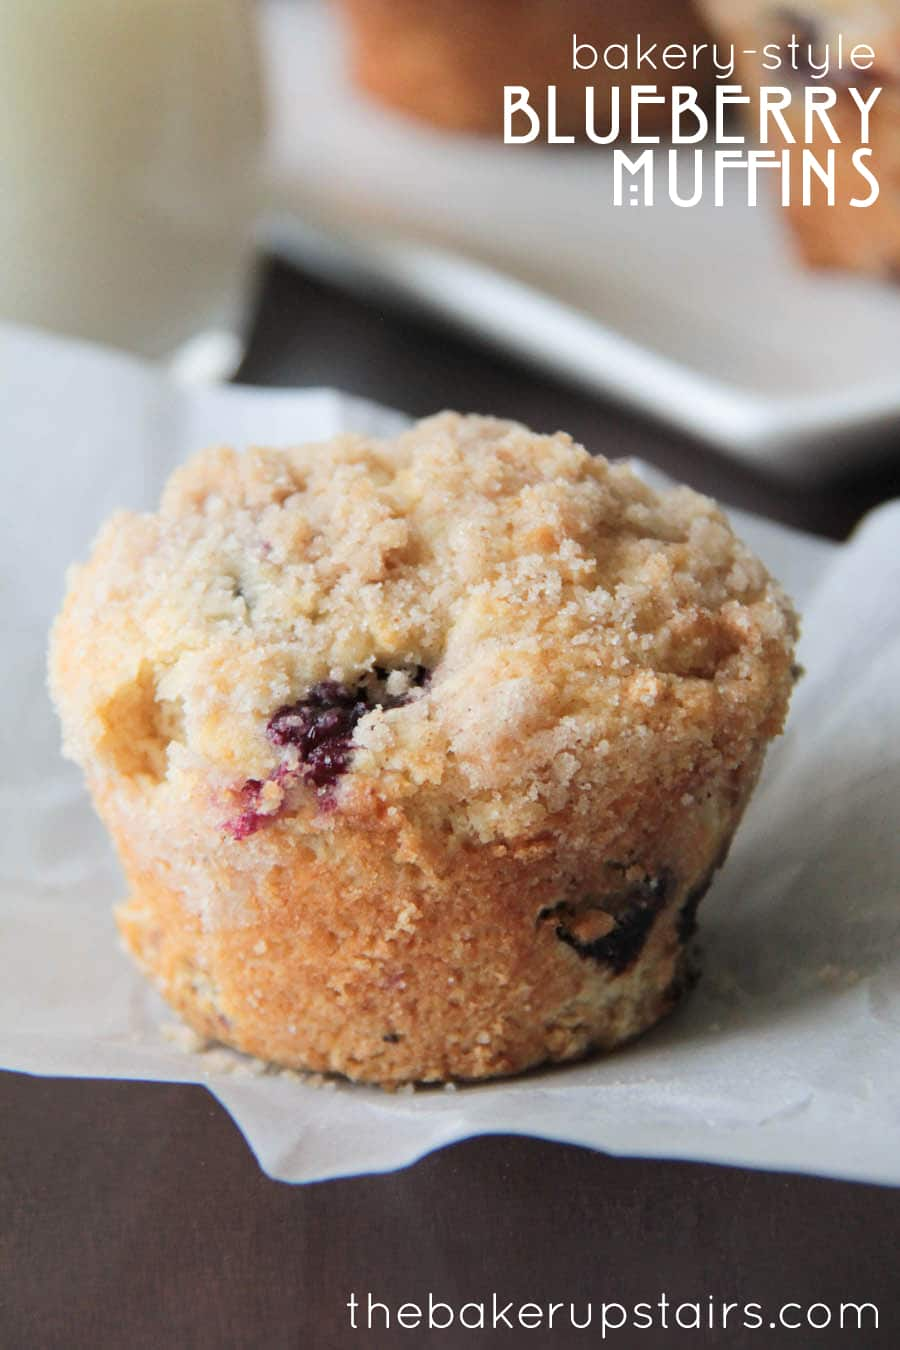 Blueberry muffin with a sugar topping